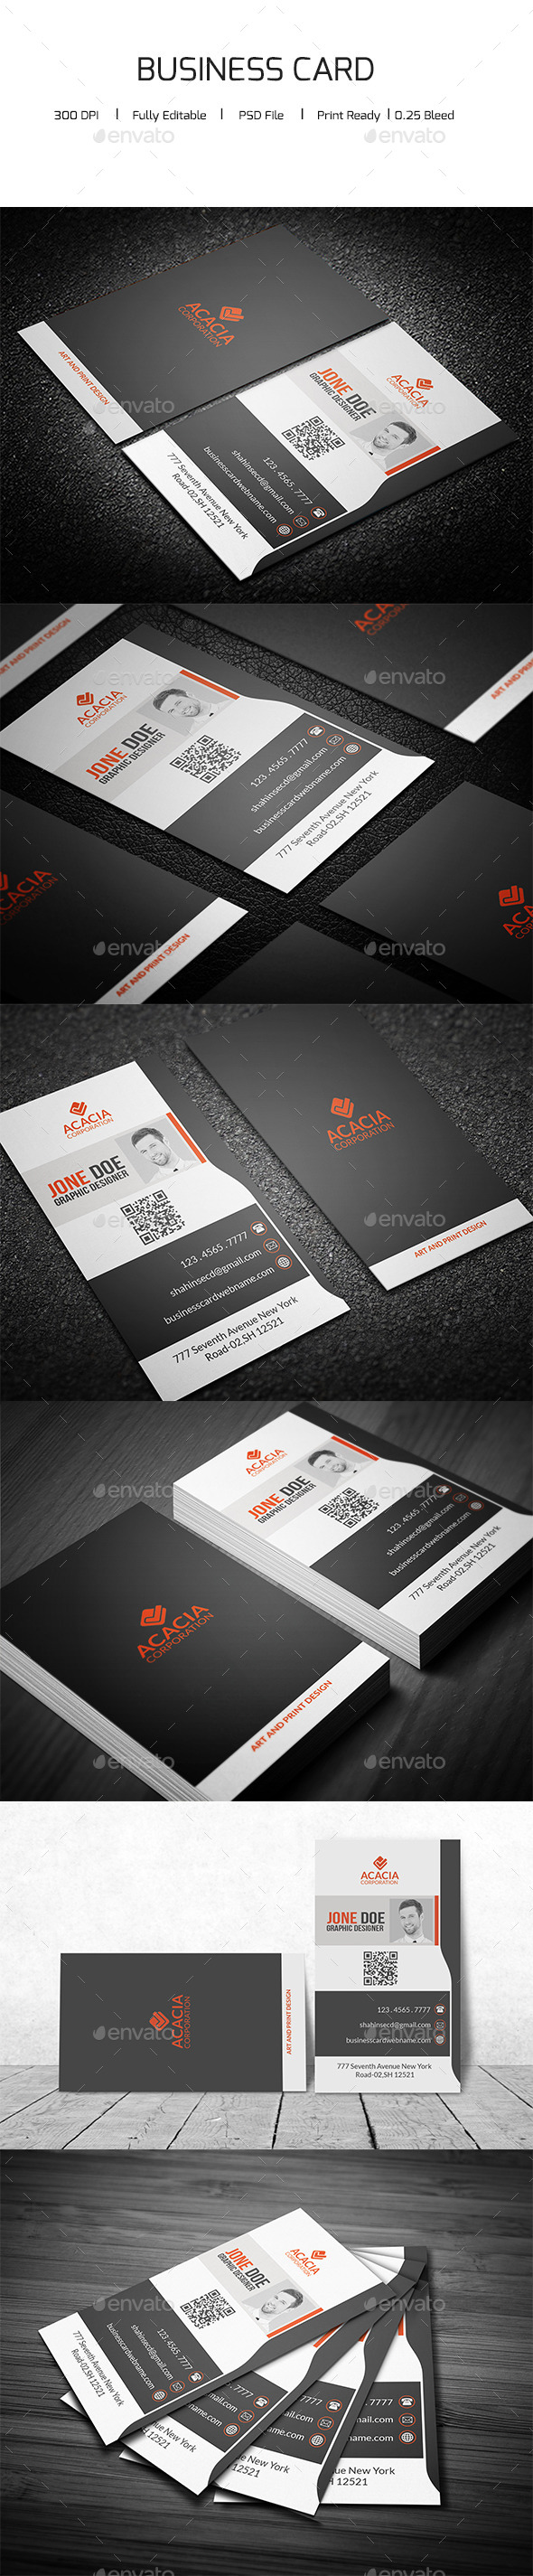 GraphicRiver Creative Vertical Business Card 11975025